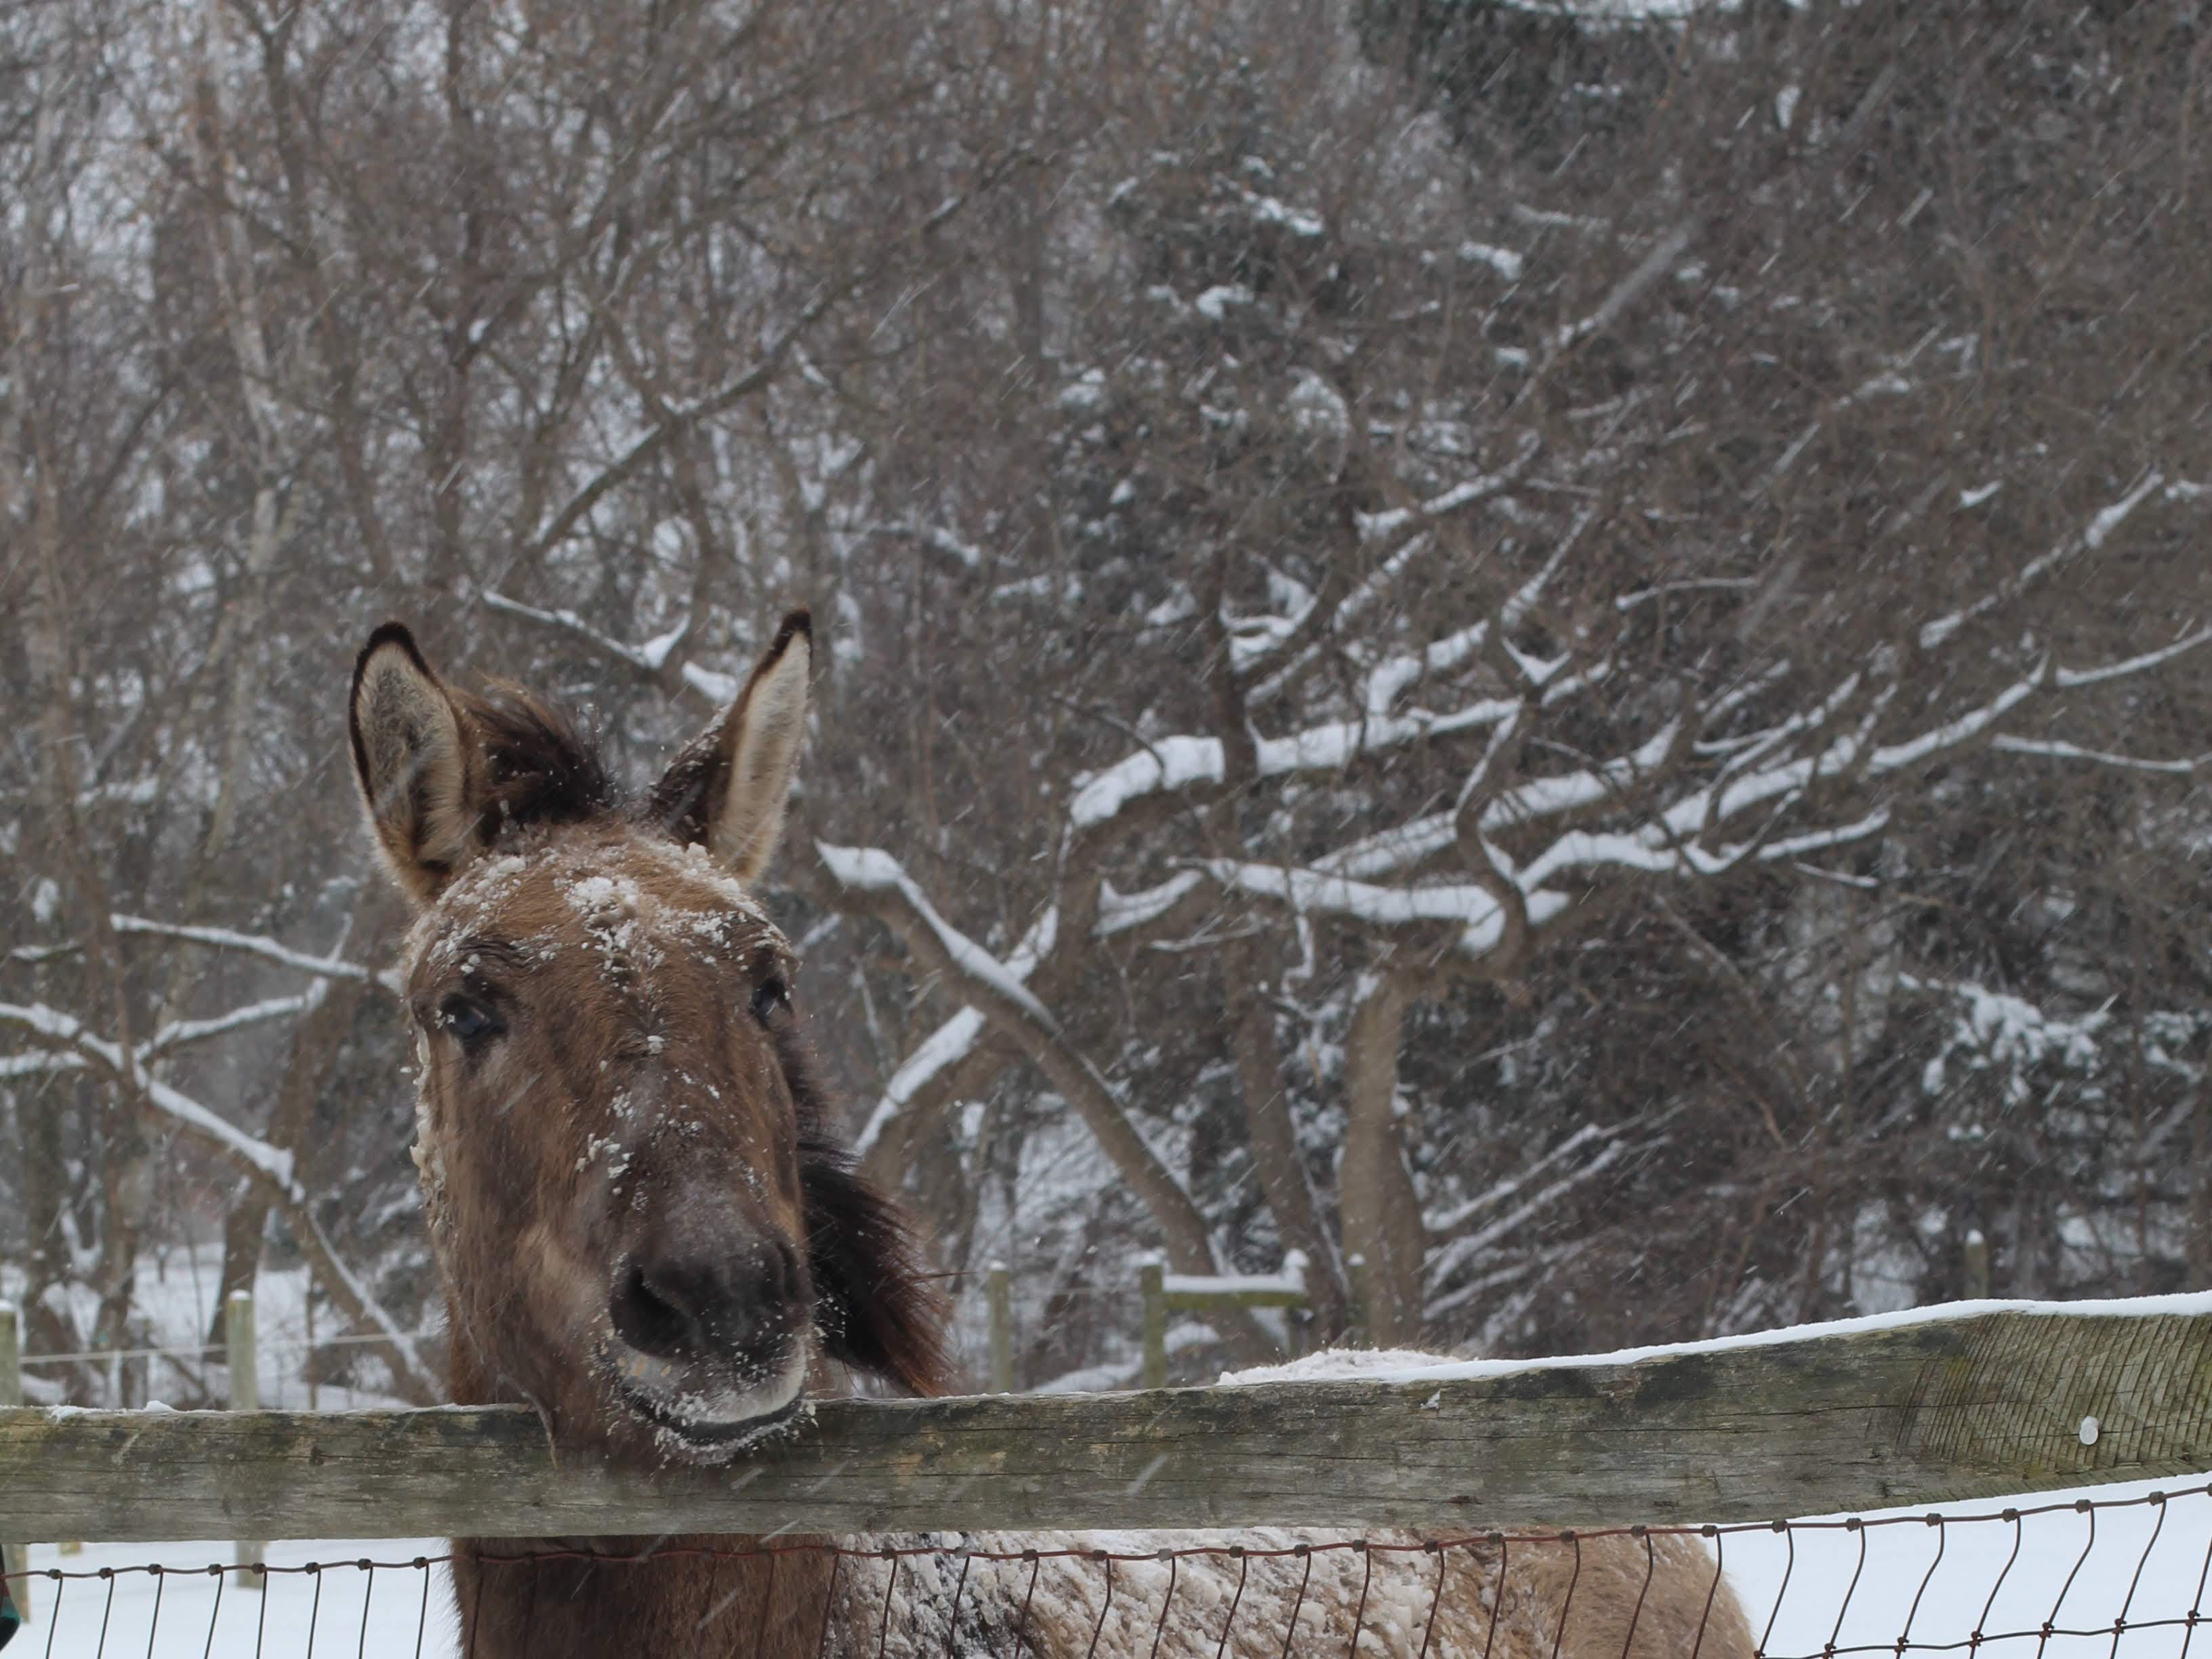 A donkey at Lollypop Farm Jan. 20, 2019.